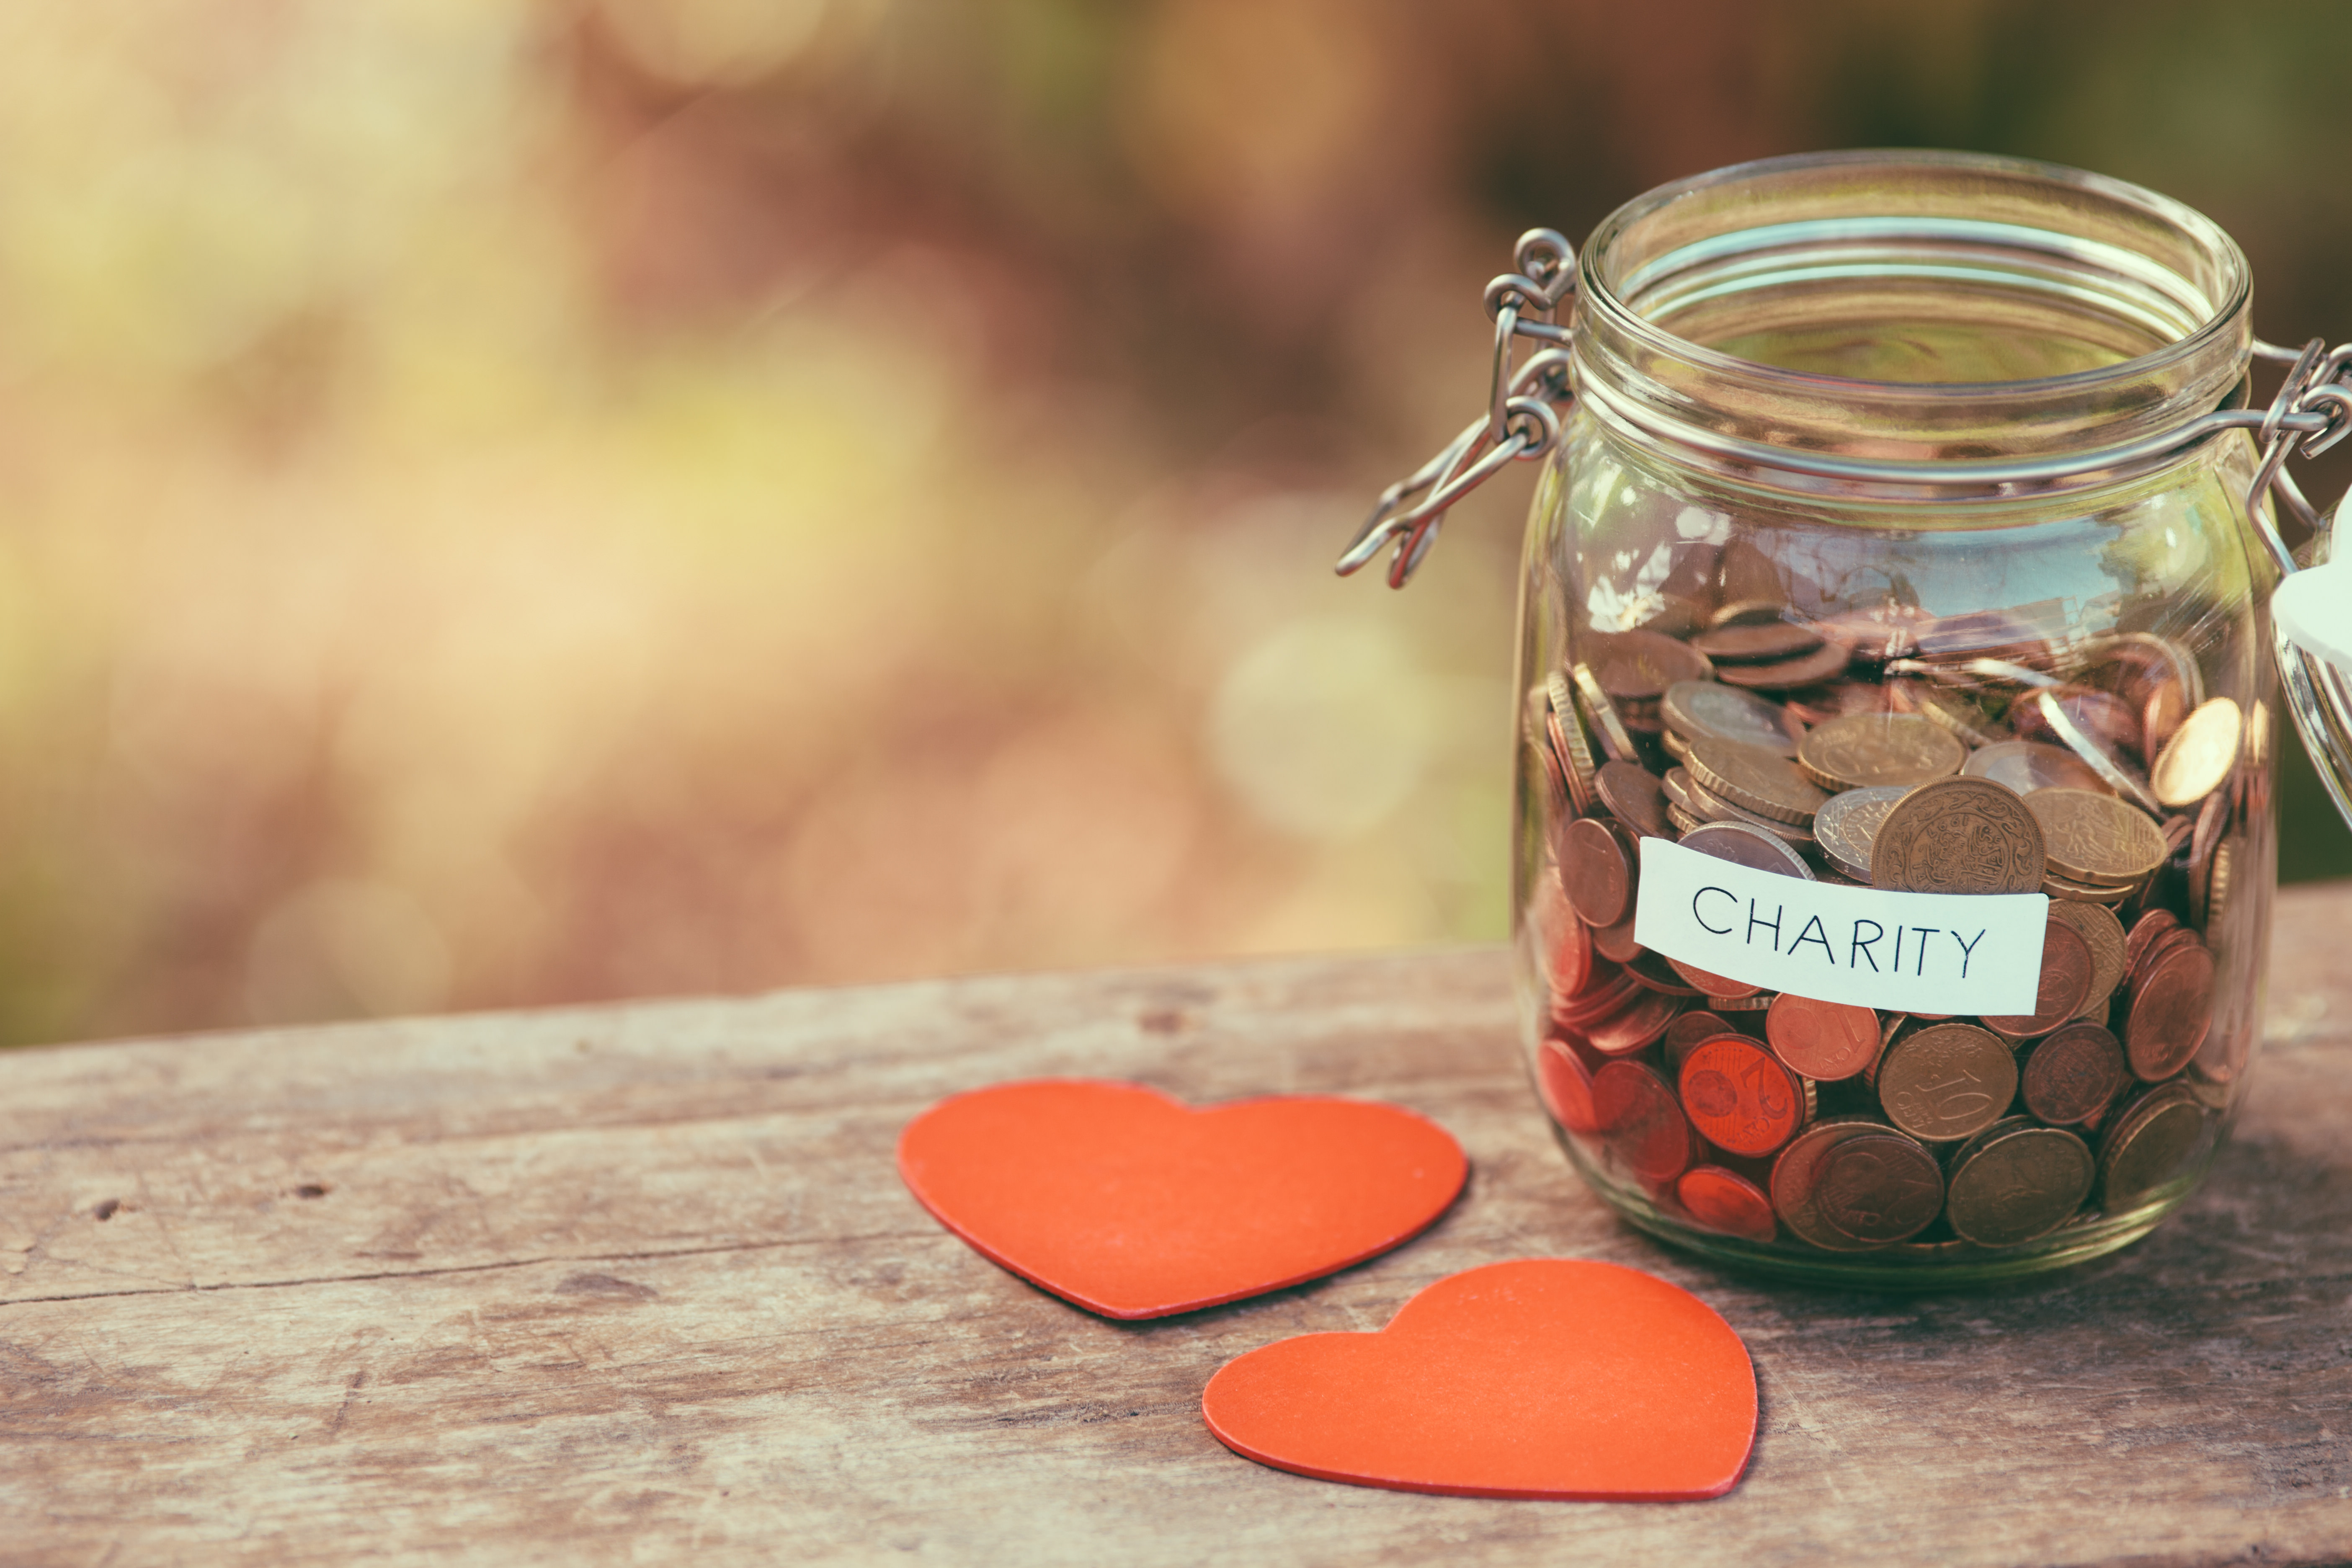 Why We Love Charity But Hate Taxes